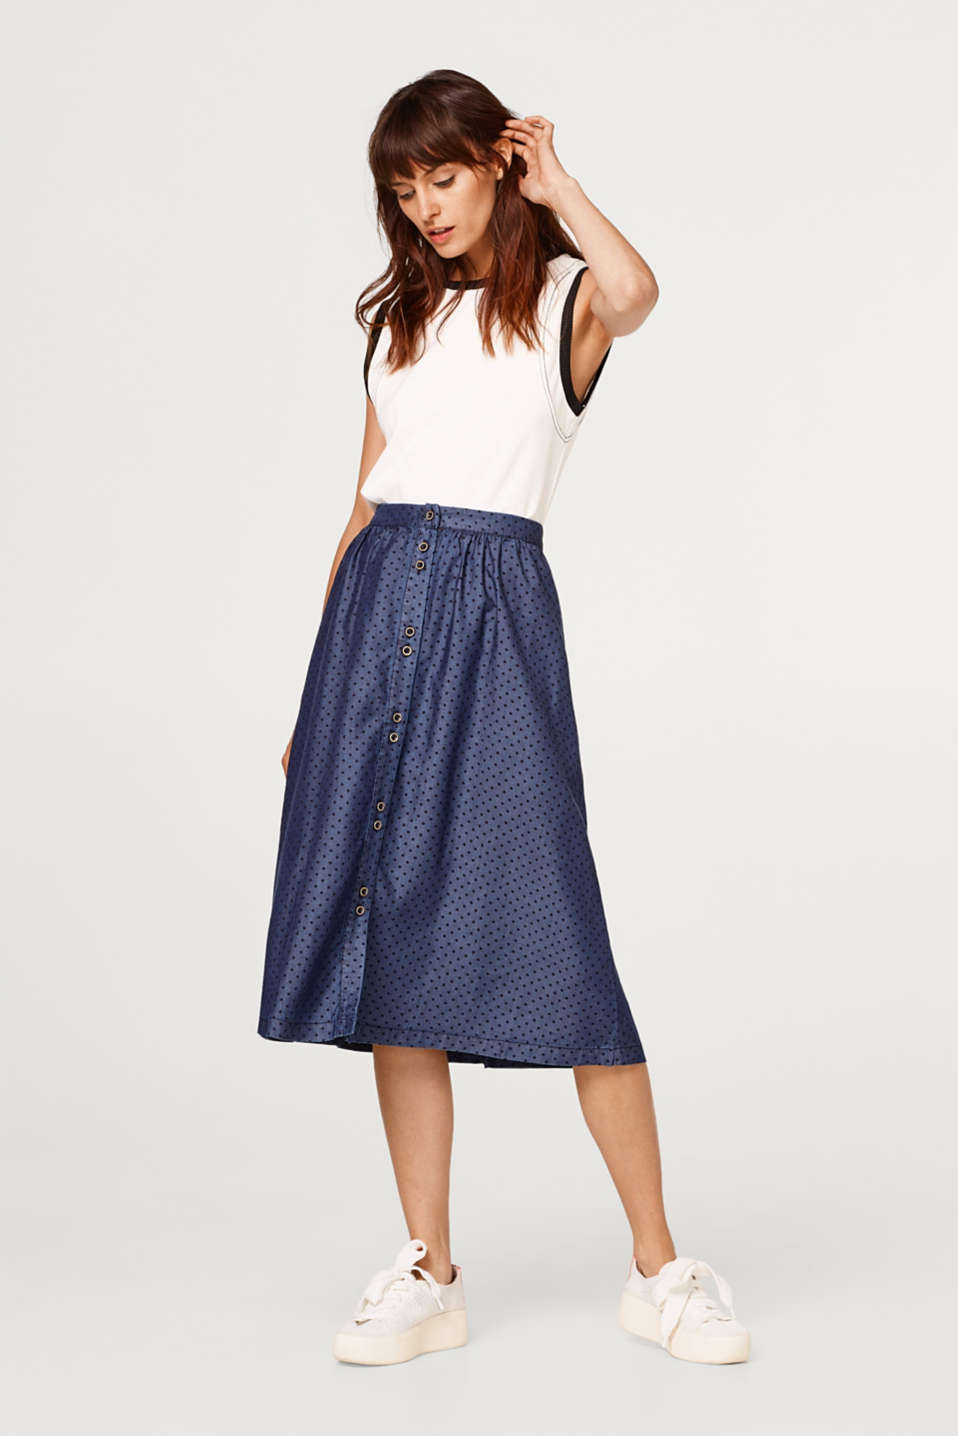 Flared skirt with polka dots, in lyocell